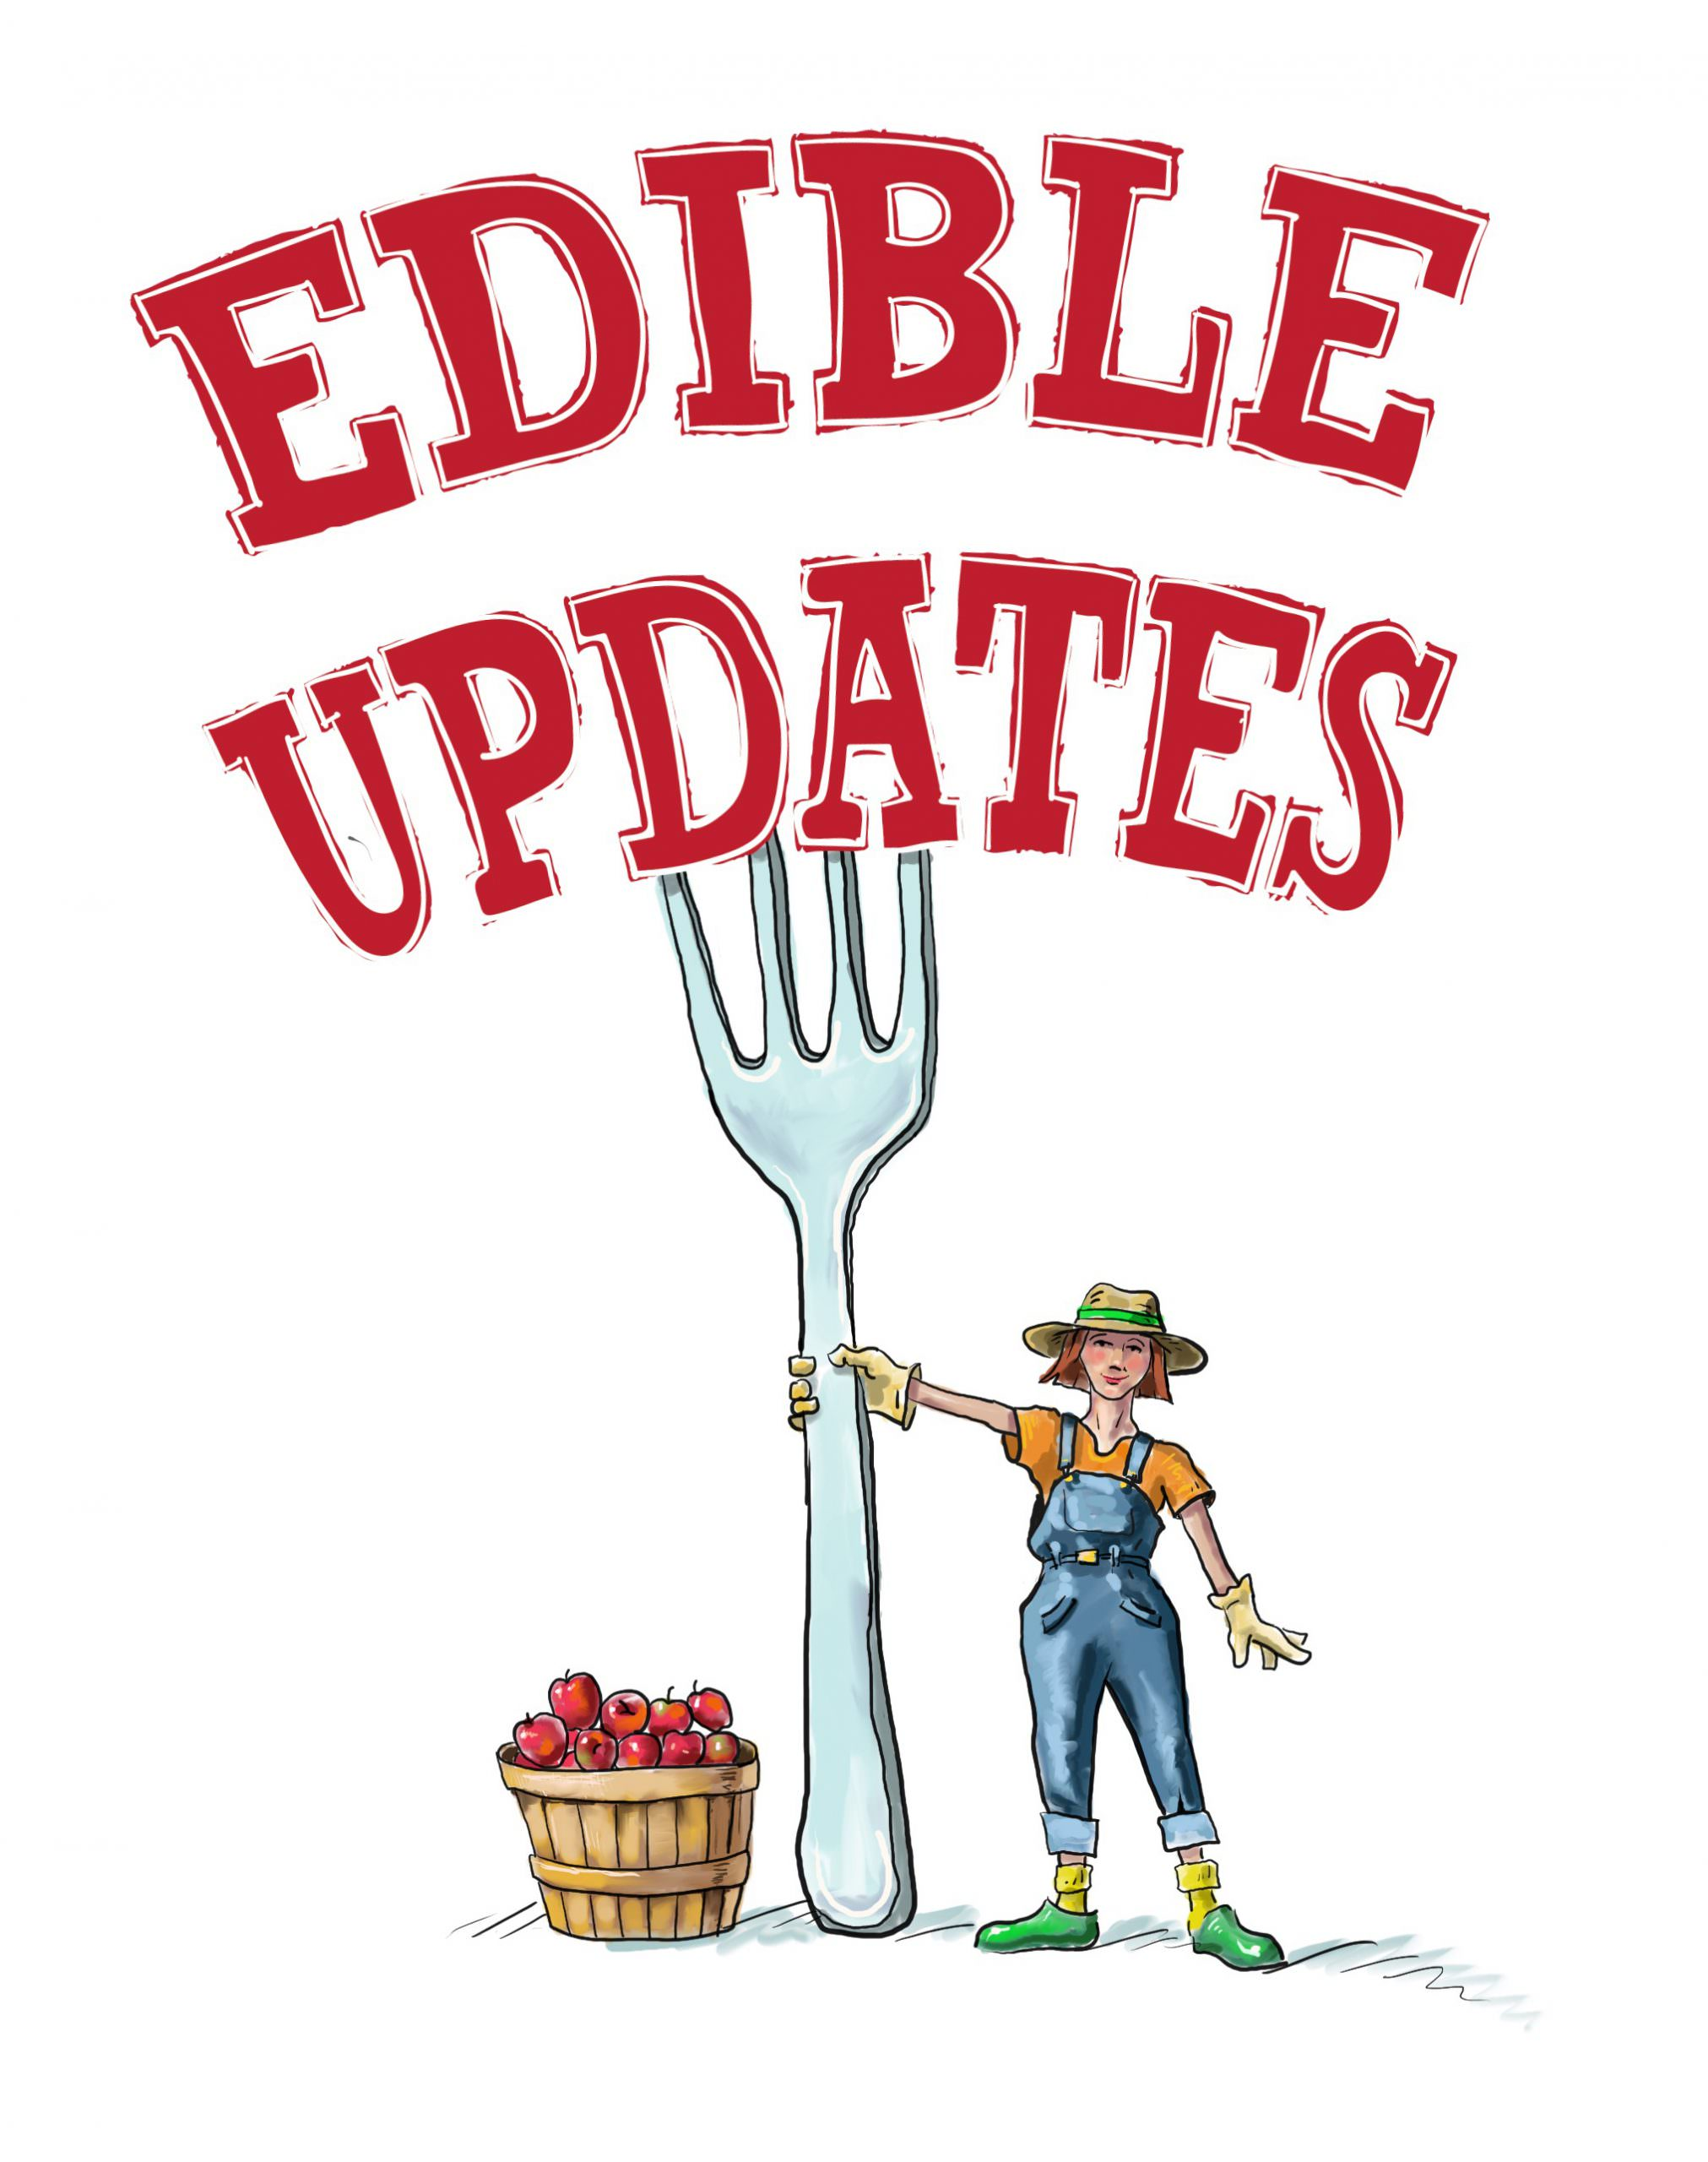 00 Illustration Edible Updates 2